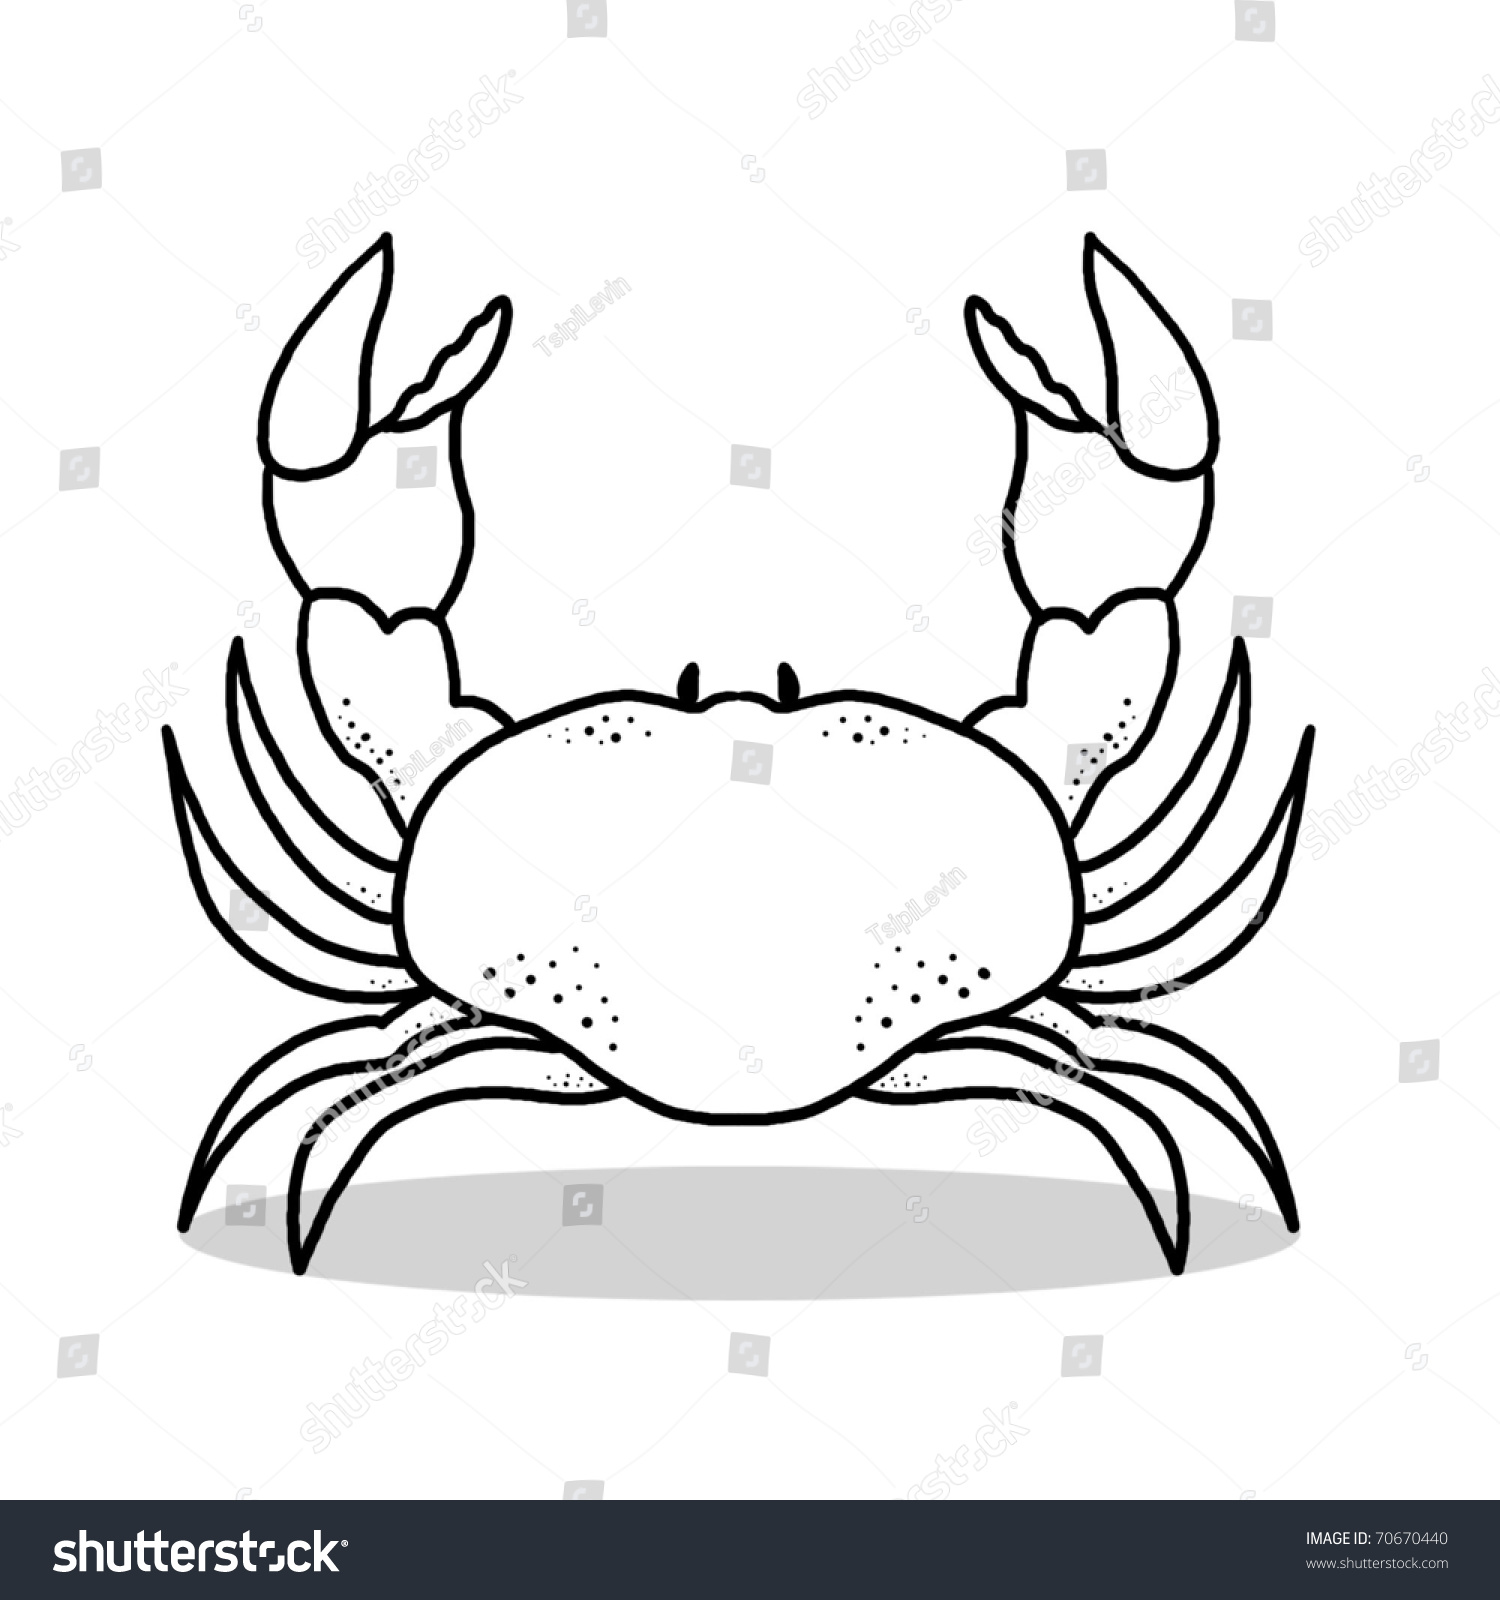 crab illustration outline drawing crab stock illustration sea creature clipart sea creature clipart free black and white